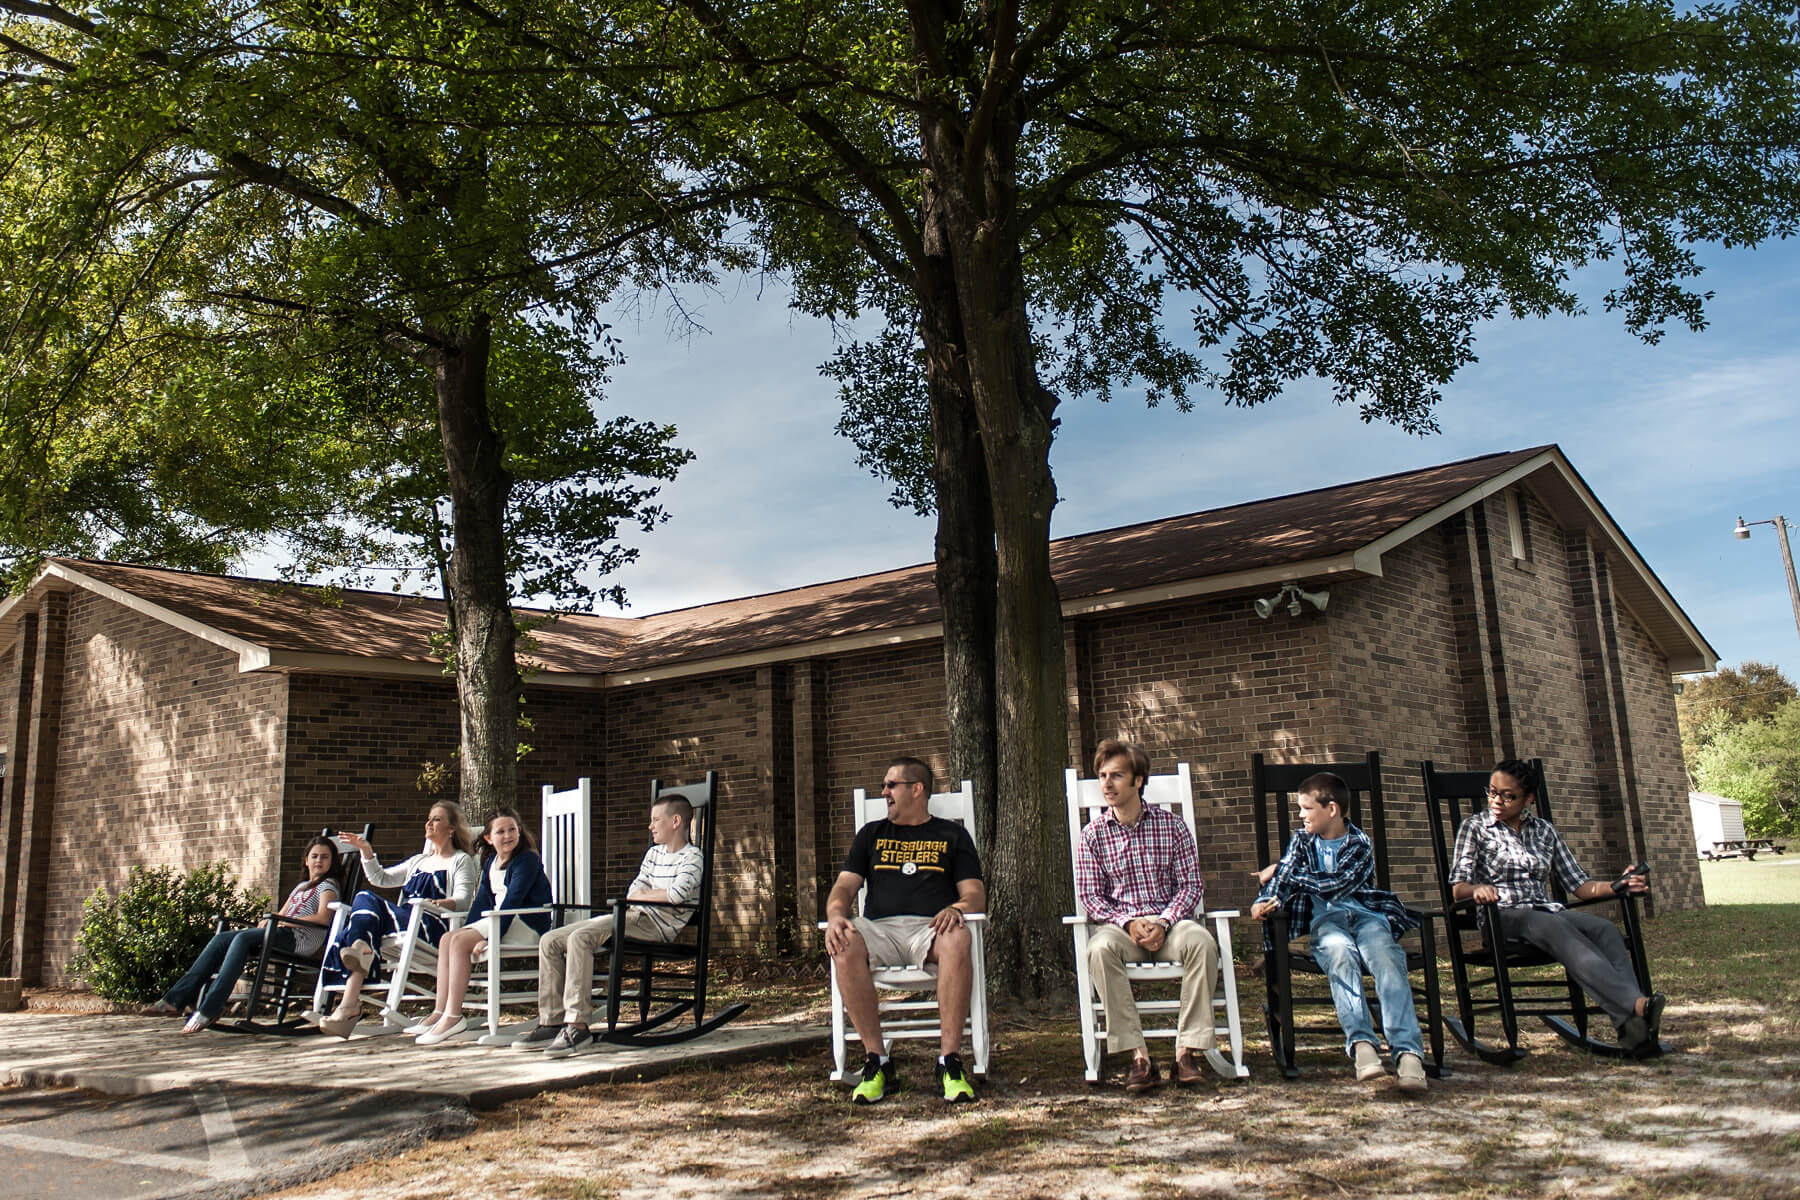 Outdoor rocking chairs at Lexington School of Music